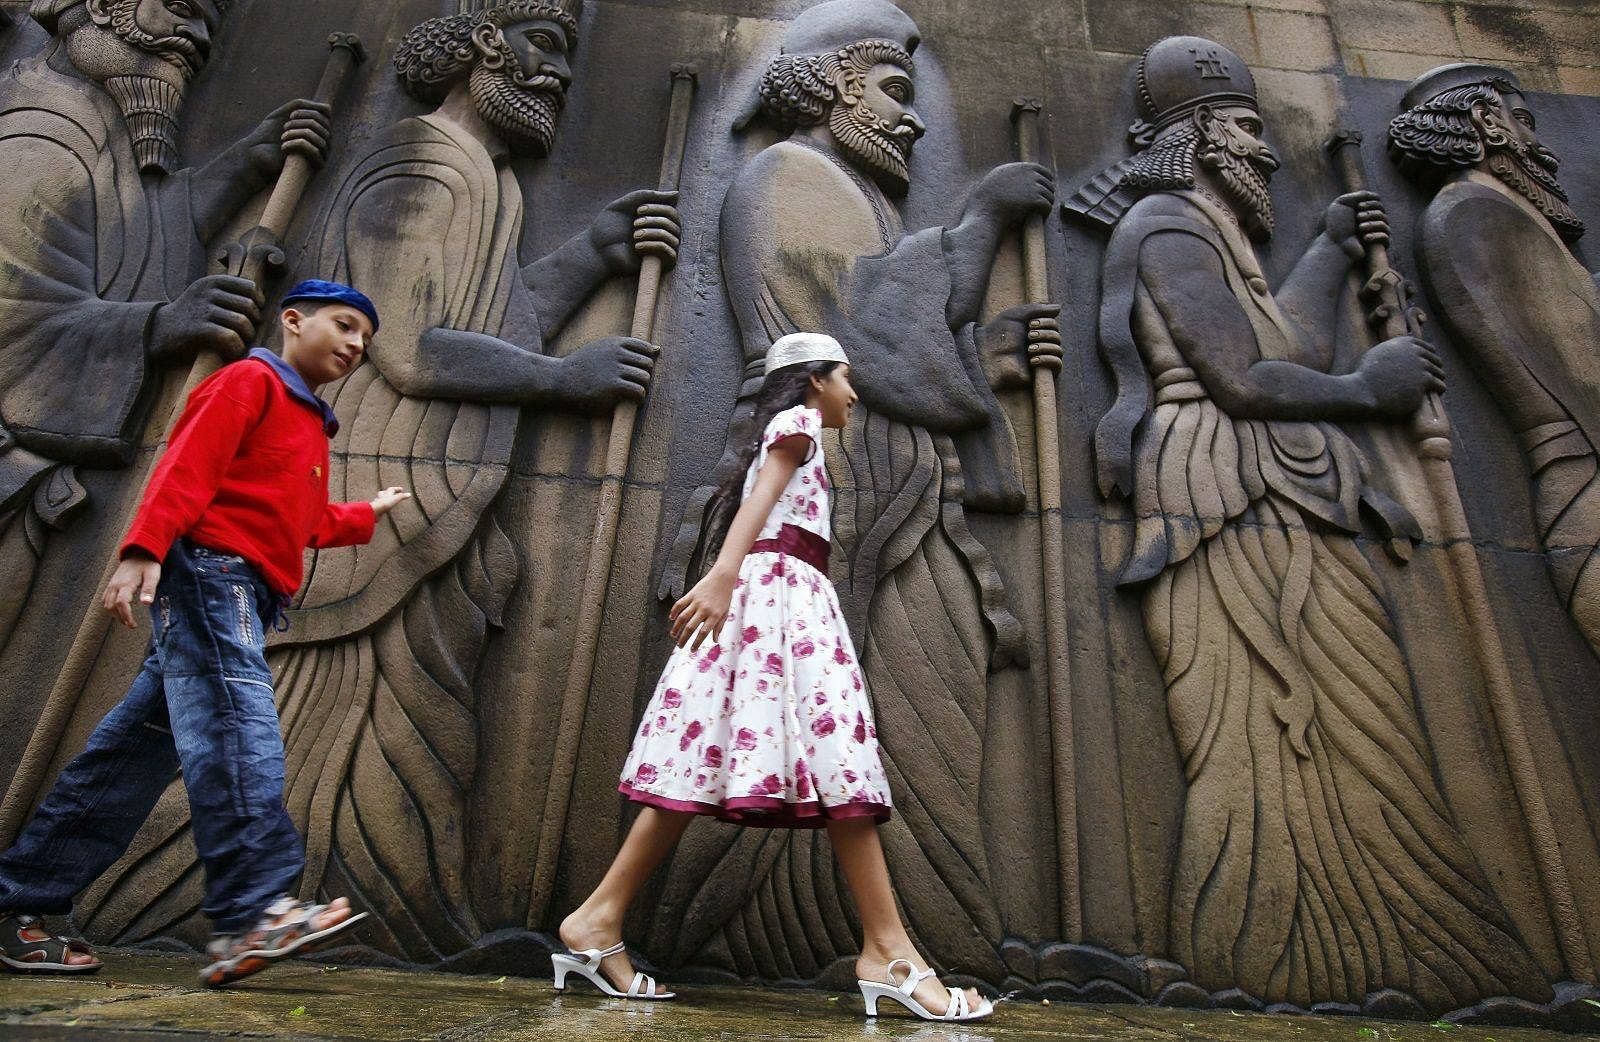 Parsi New Year 2017: Community celebrates Navroz with great religious fervour